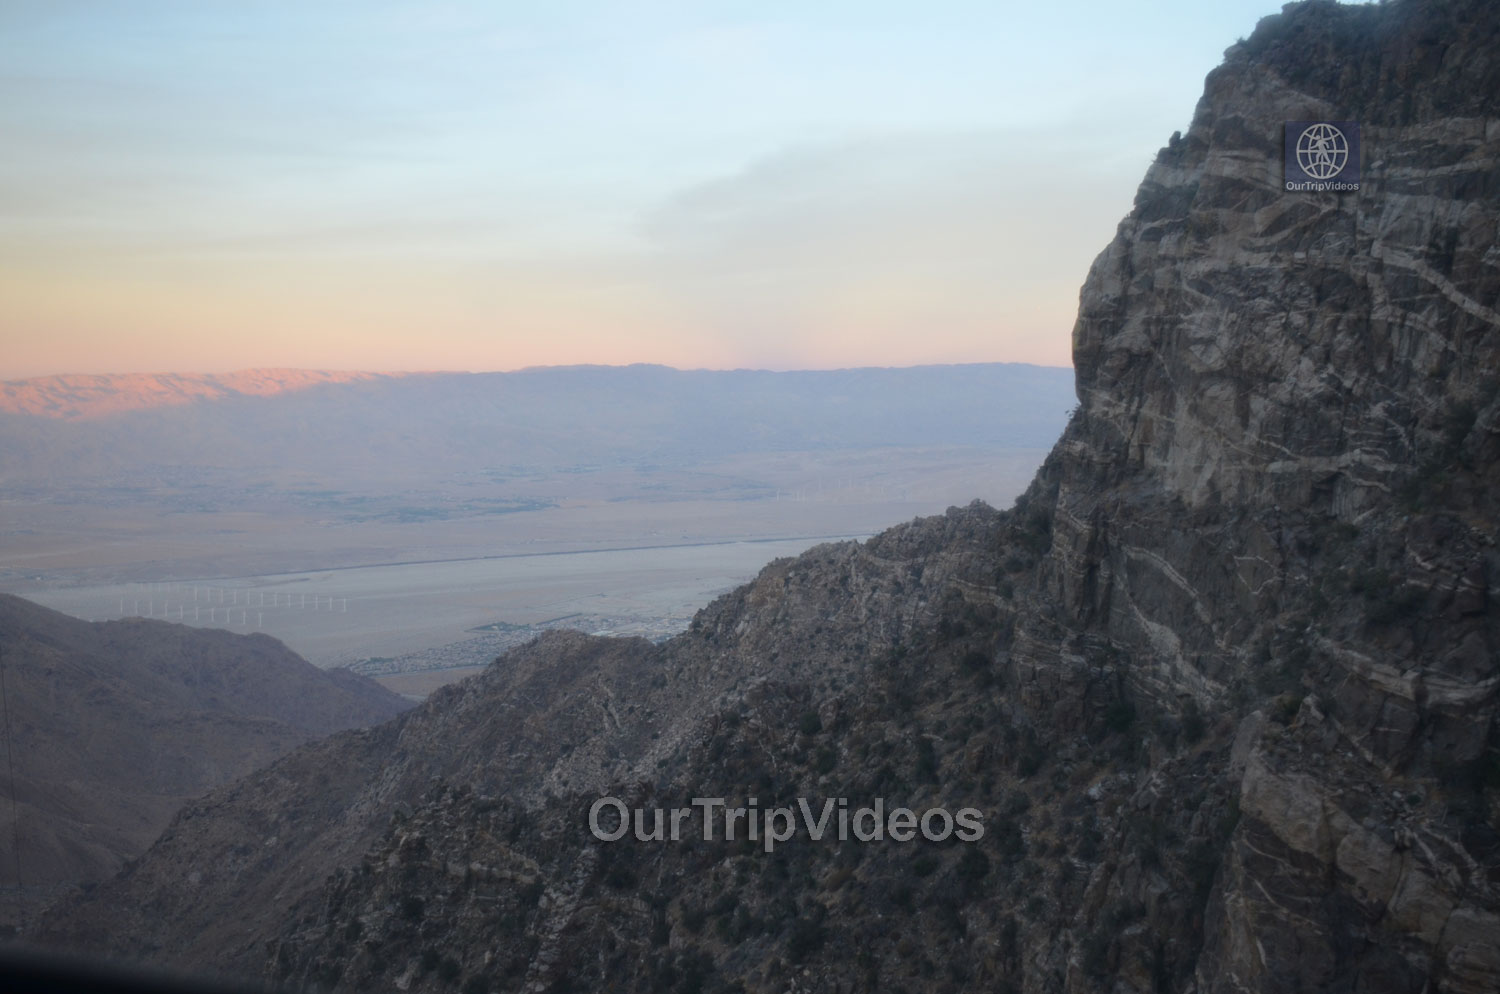 Aerial Tramway, Palm Springs, CA, USA - Picture 25 of 25